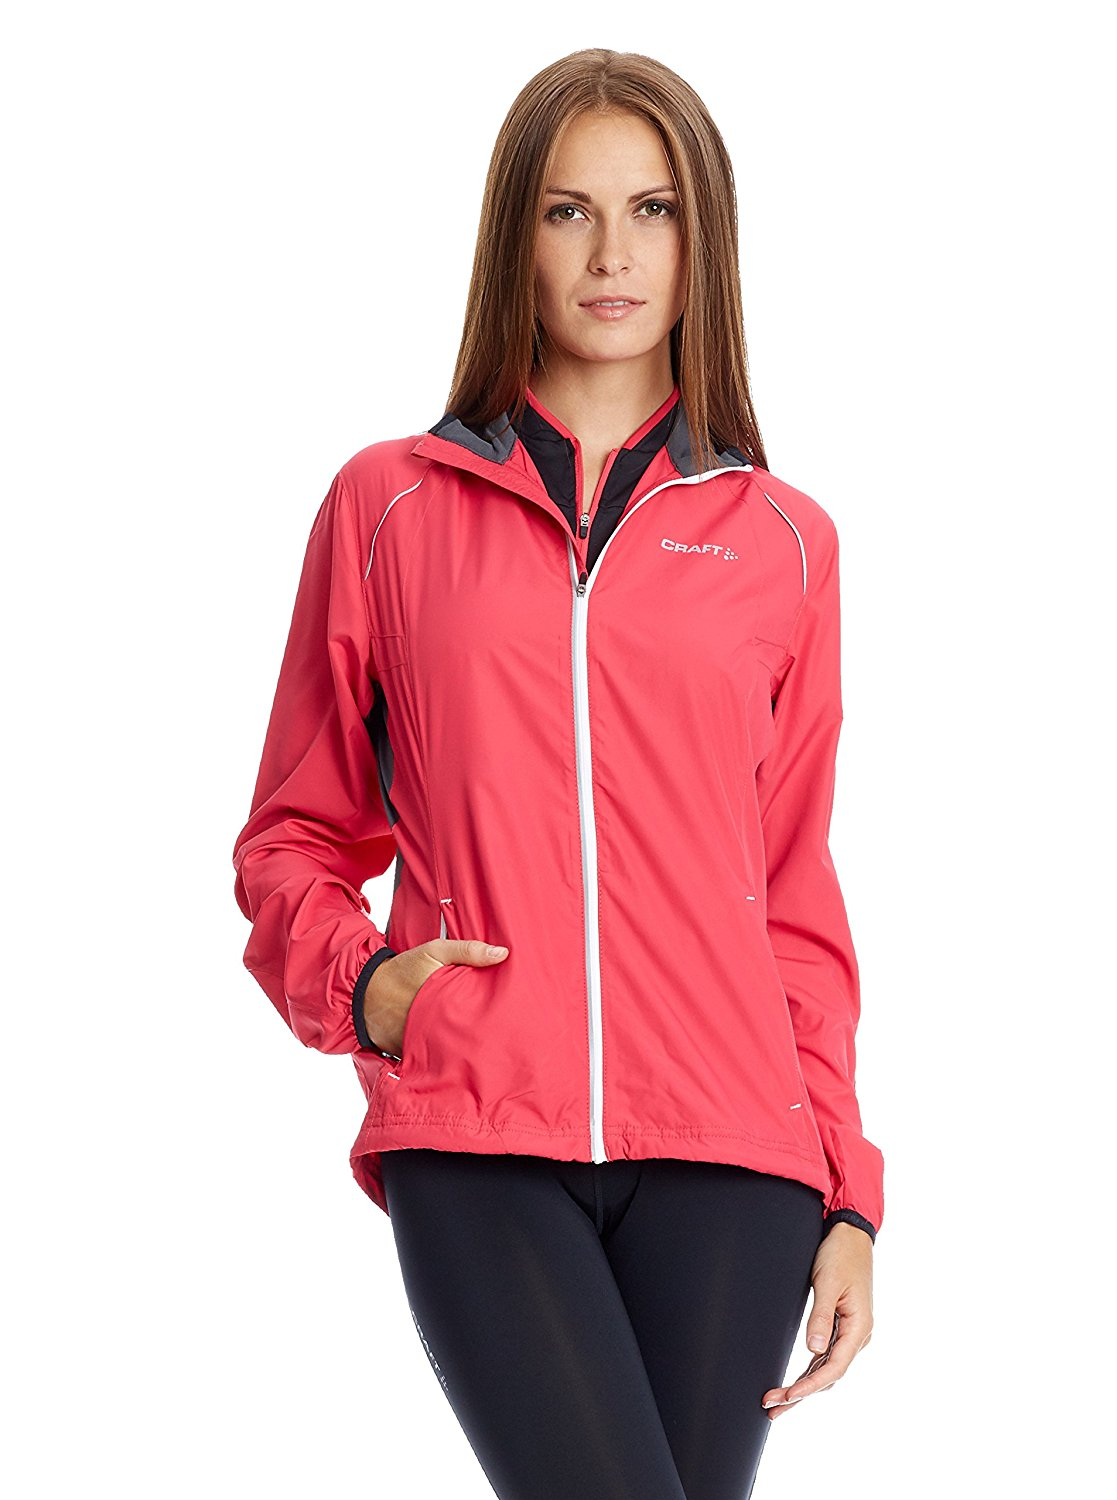 Click to buy this Running Jacket